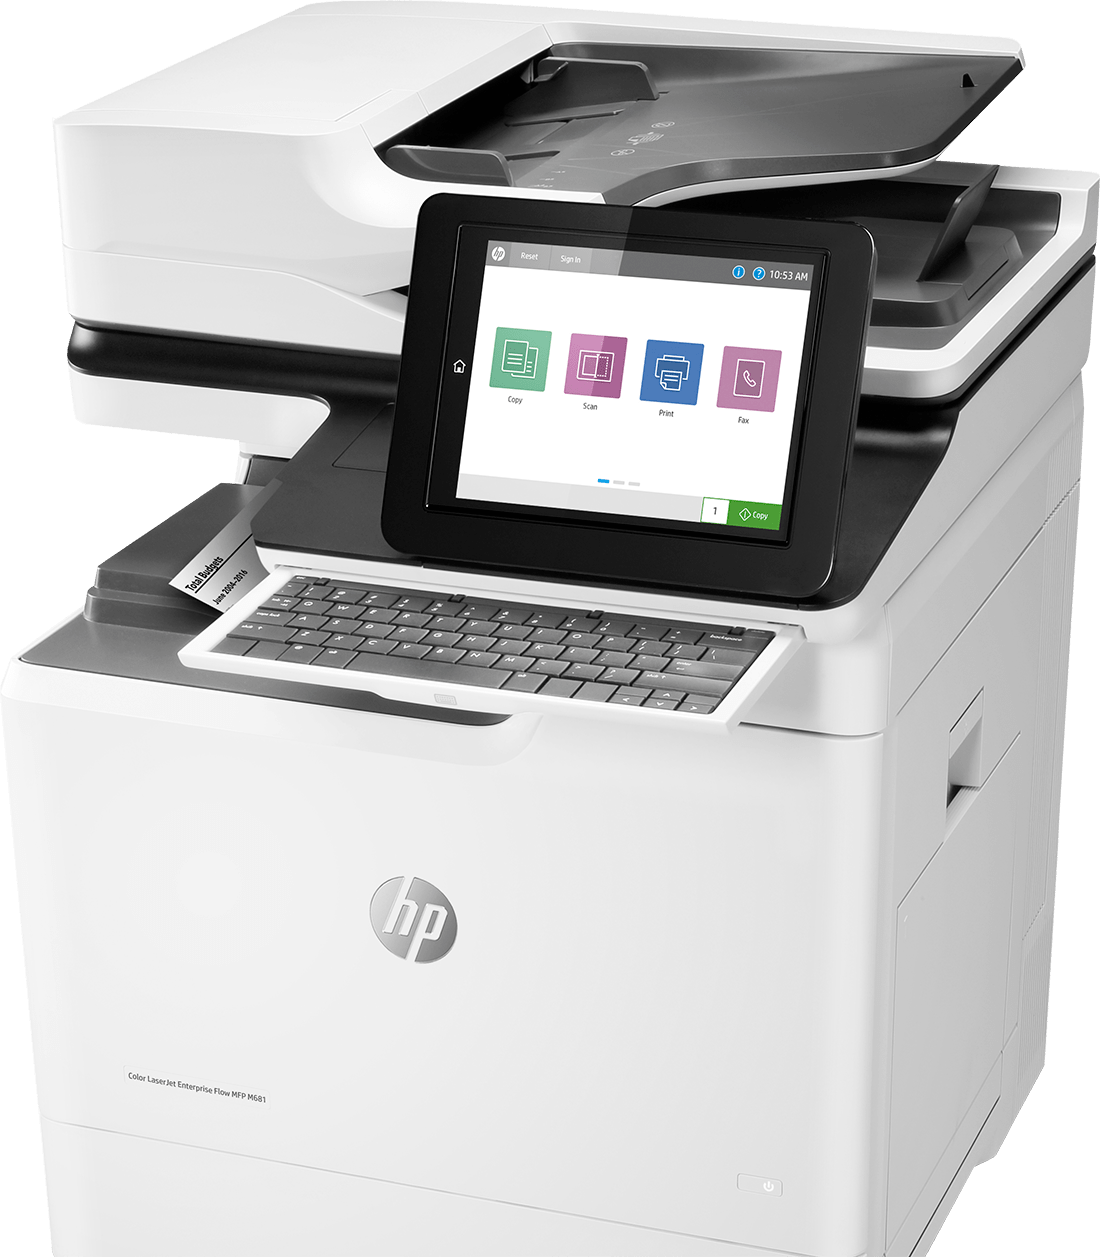 HP LaserJet Printers - Les Olson Company  HP ServiceOne Expert